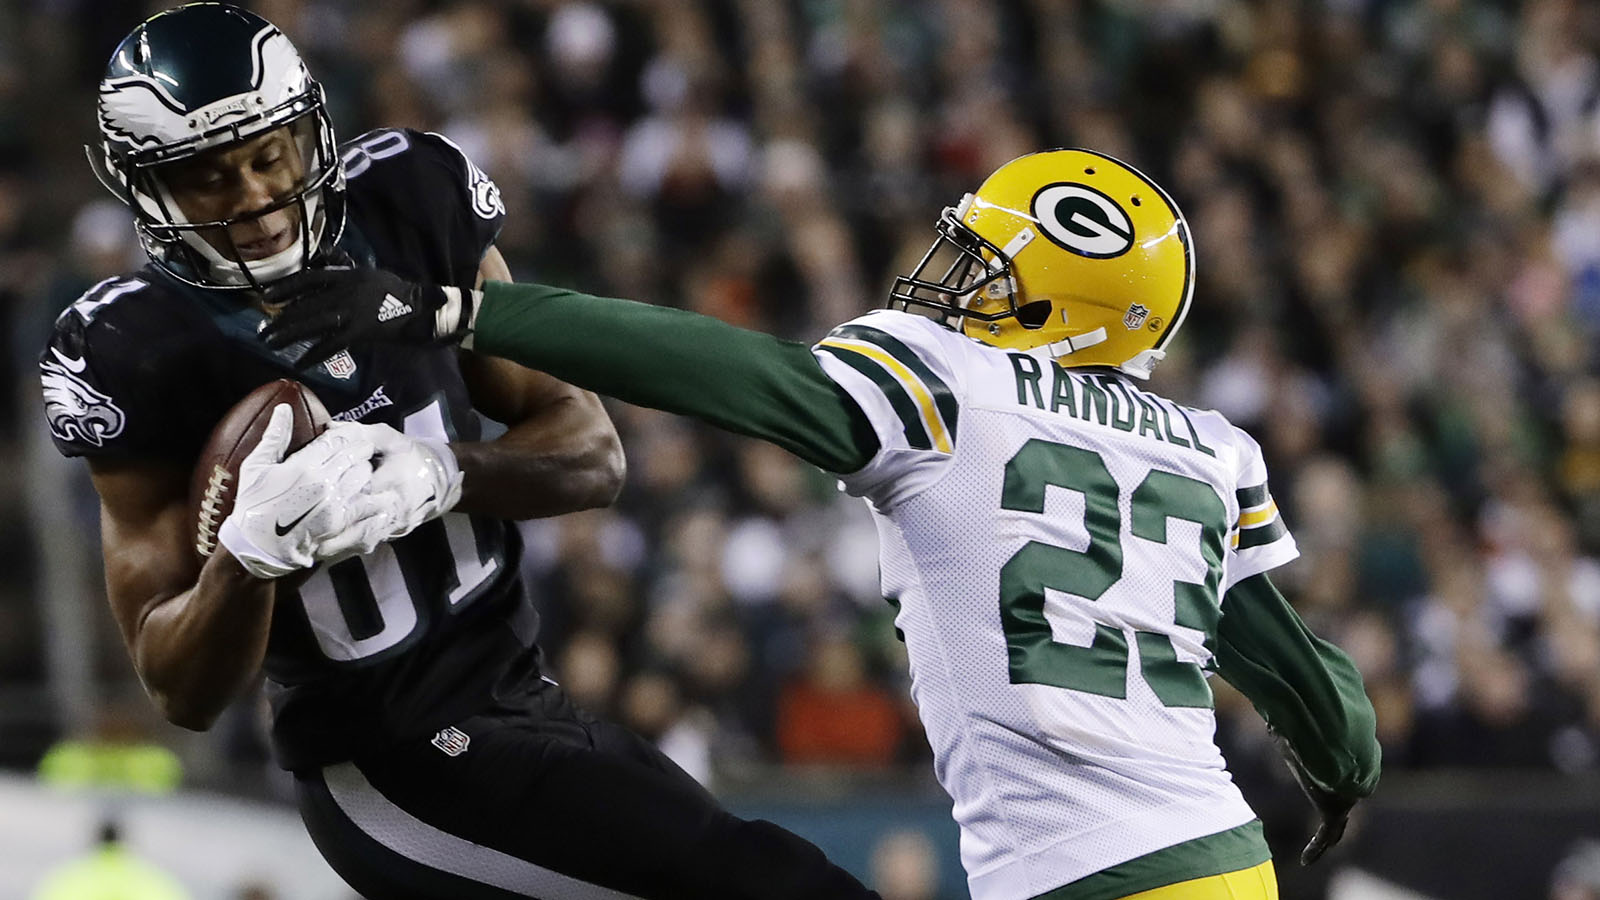 Packers snap counts: Randall gets right back in the swing of things